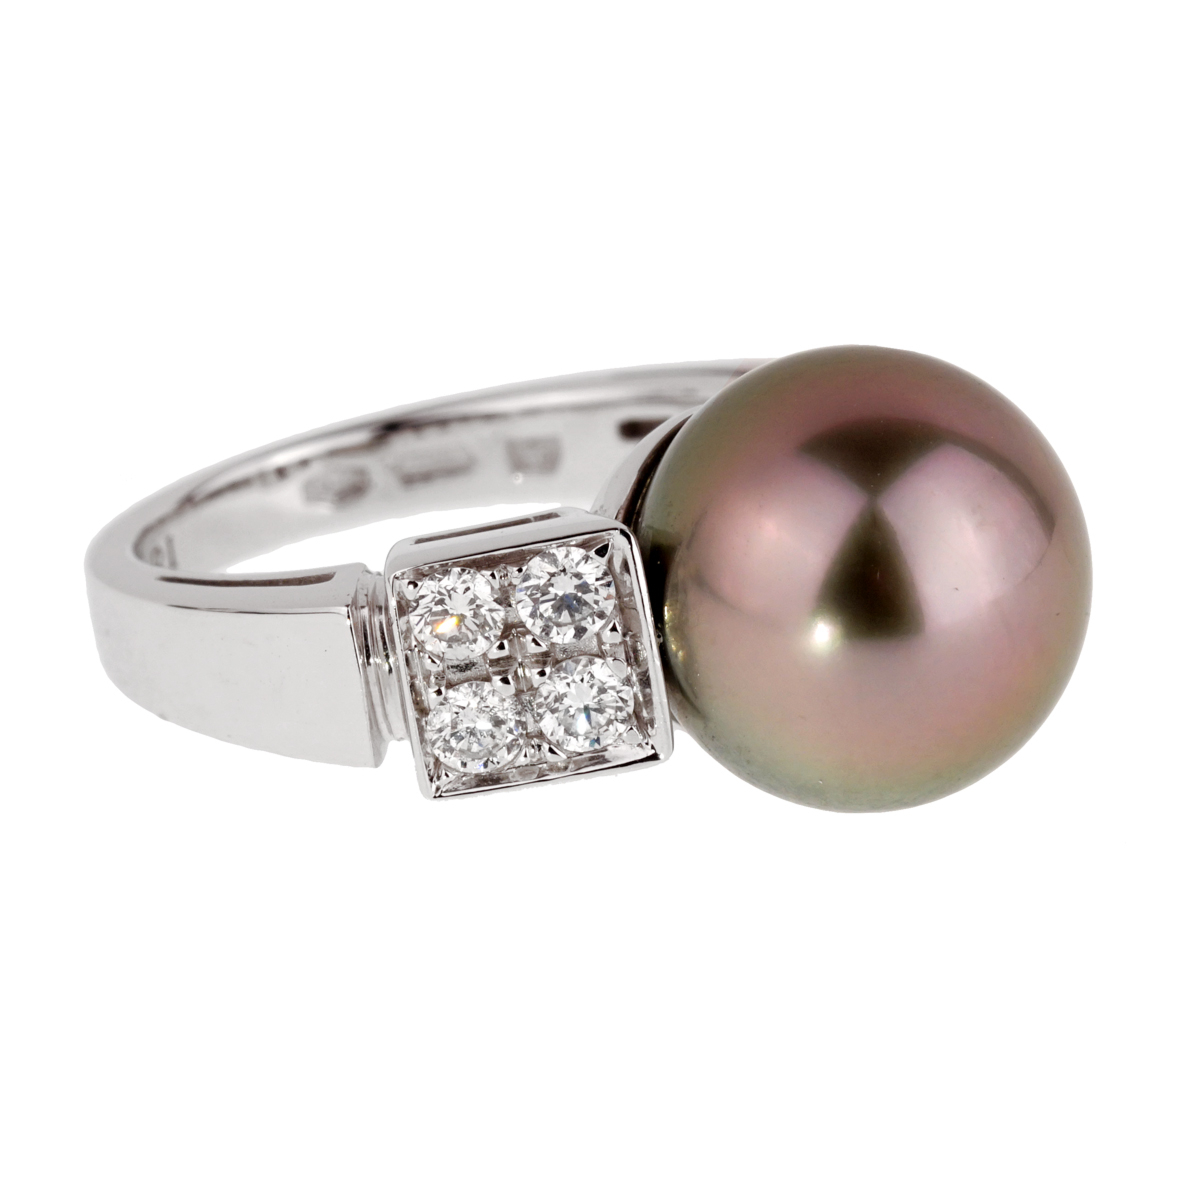 Bulgari Lucea Pearl White Gold Diamond Ring - Bulgari Jewelry